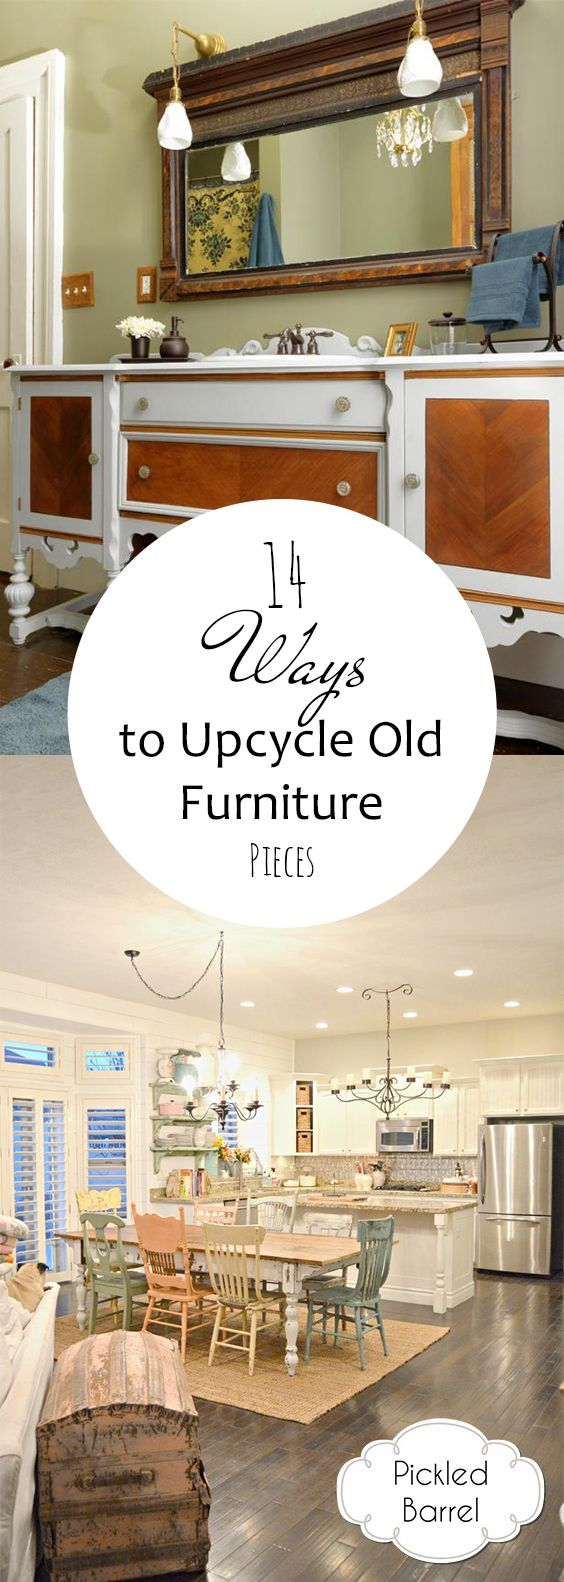 How to Reuse Old Furniture, How to Upcycle Old Furniture, Things to Do With Old Furniture, Furniture Remodeling, Easy DIY Projects, Quick DIY Projects, DIY Furniture, DIY Home